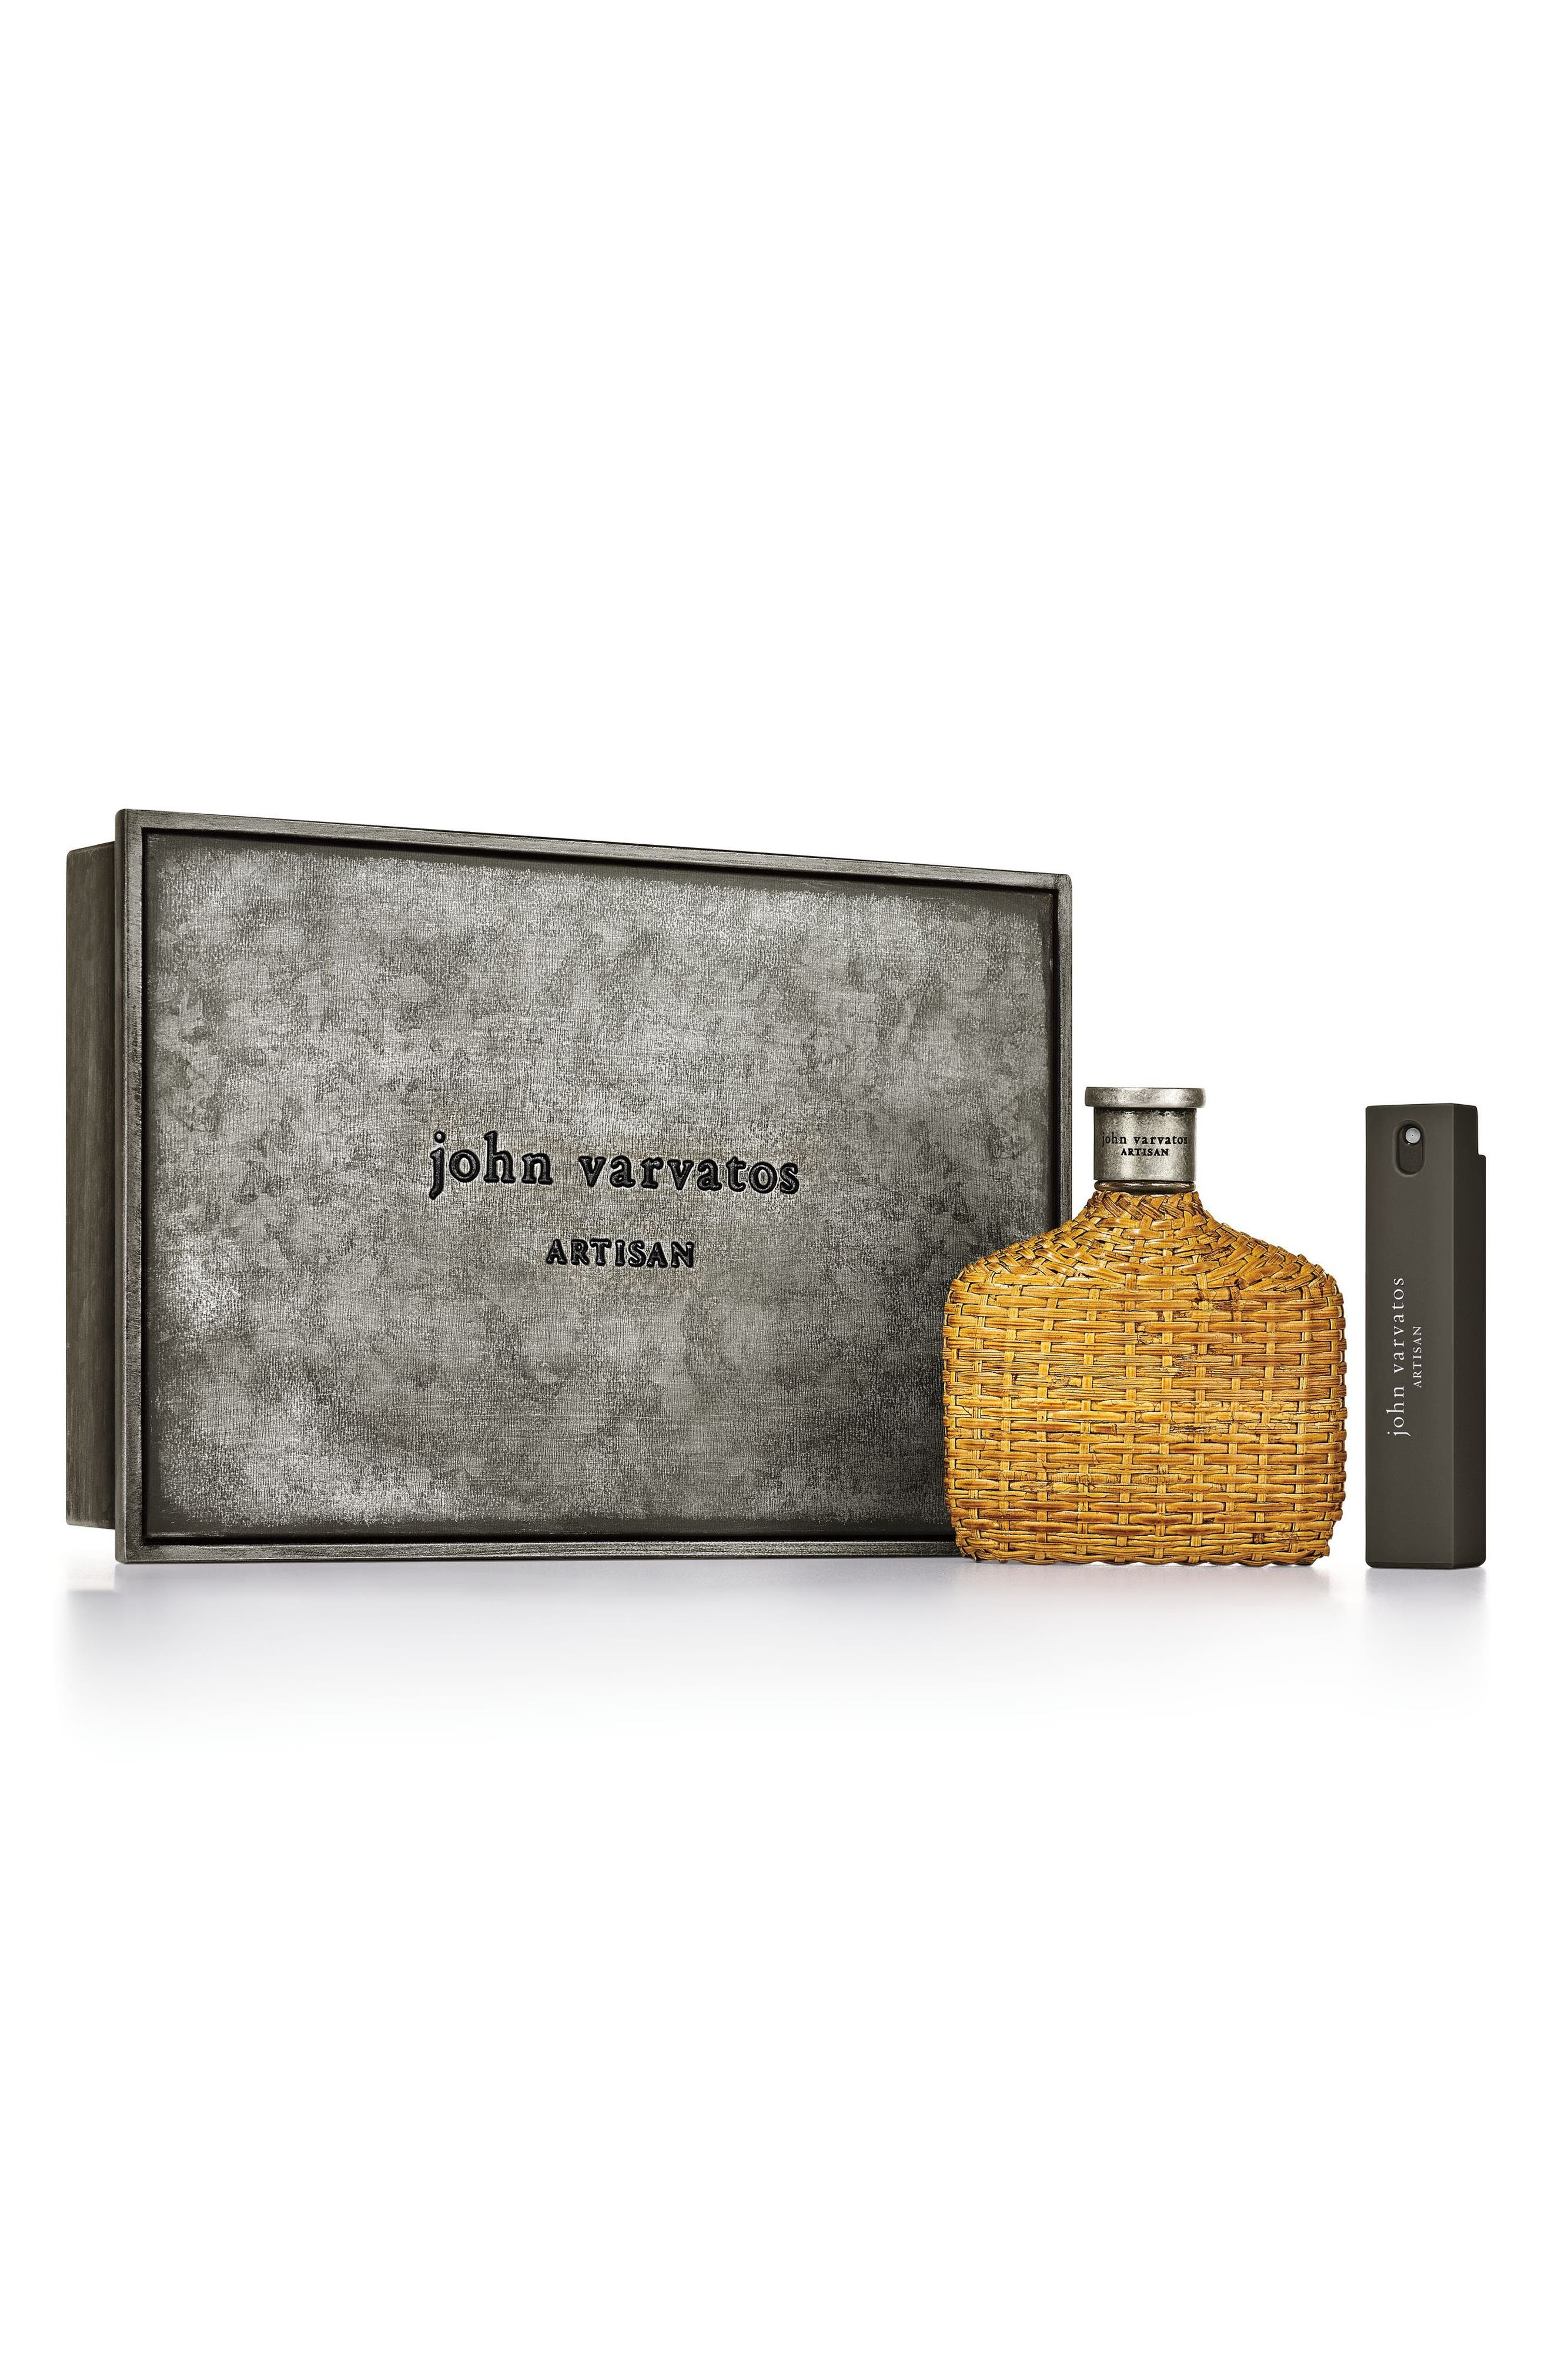 John Varvatos Artisan Eau de Toilette Set ($119 Value)